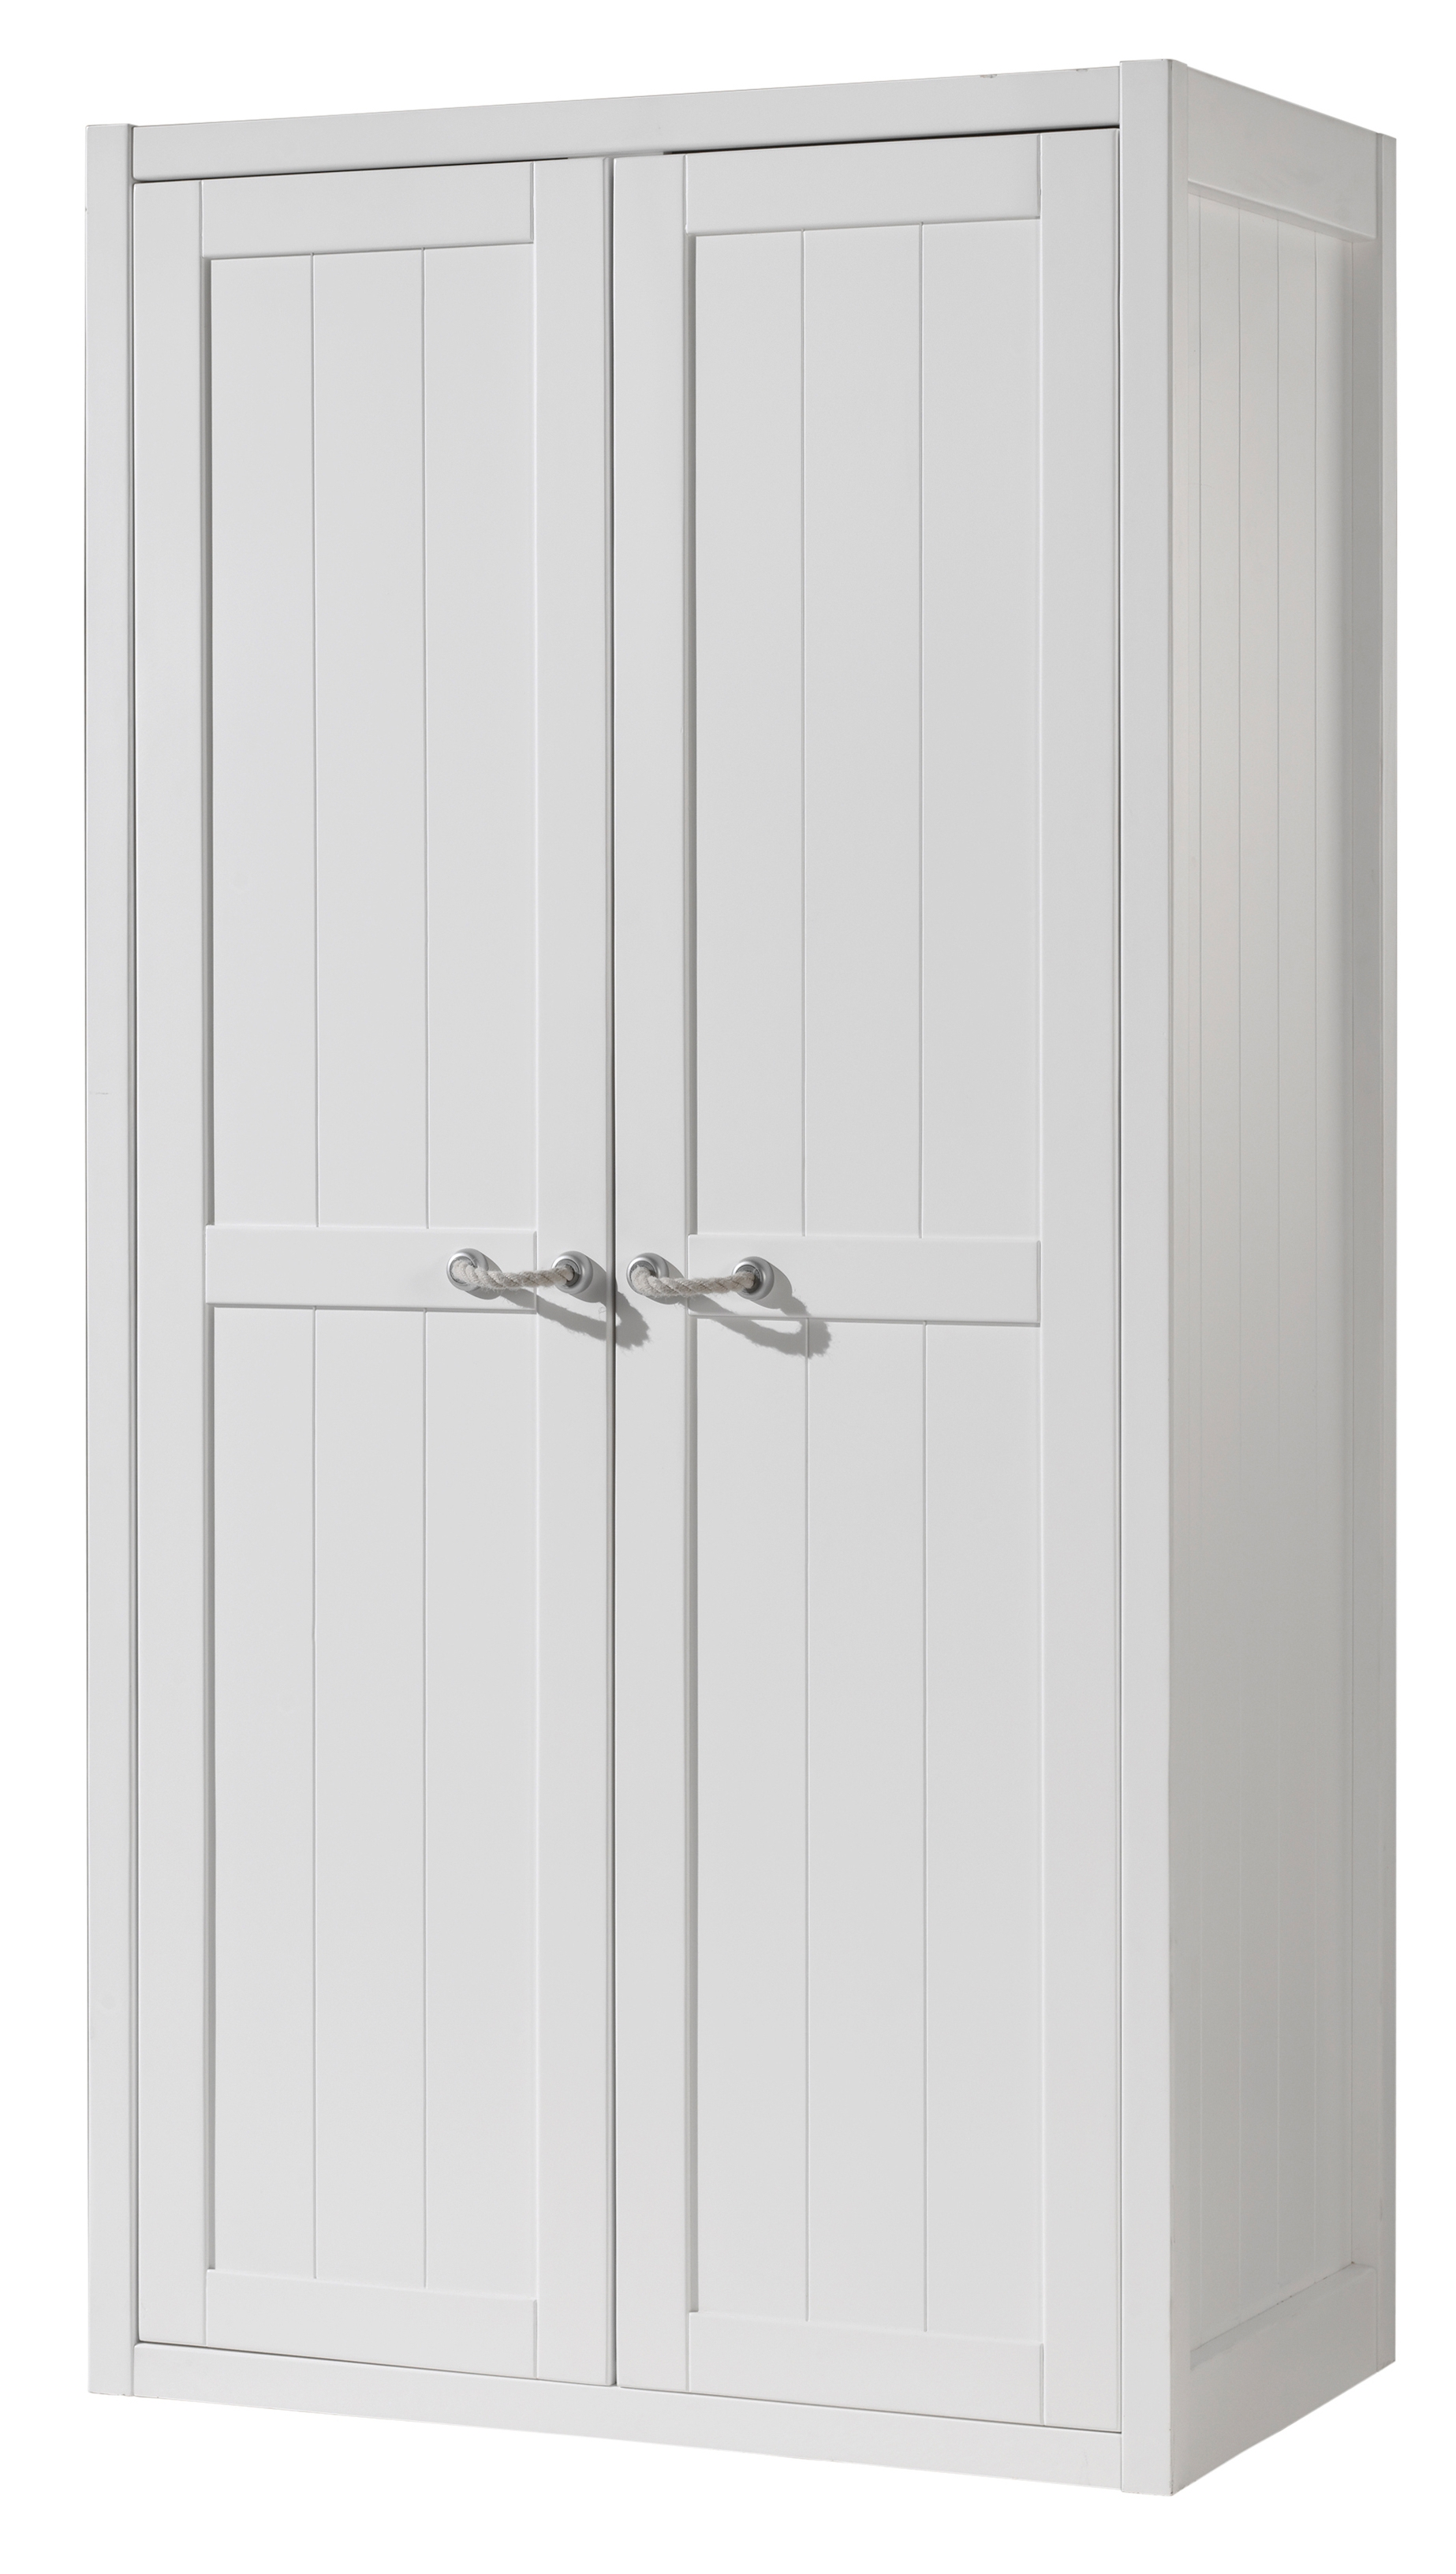 armoire 2 portes bois laqu blanc marin. Black Bedroom Furniture Sets. Home Design Ideas